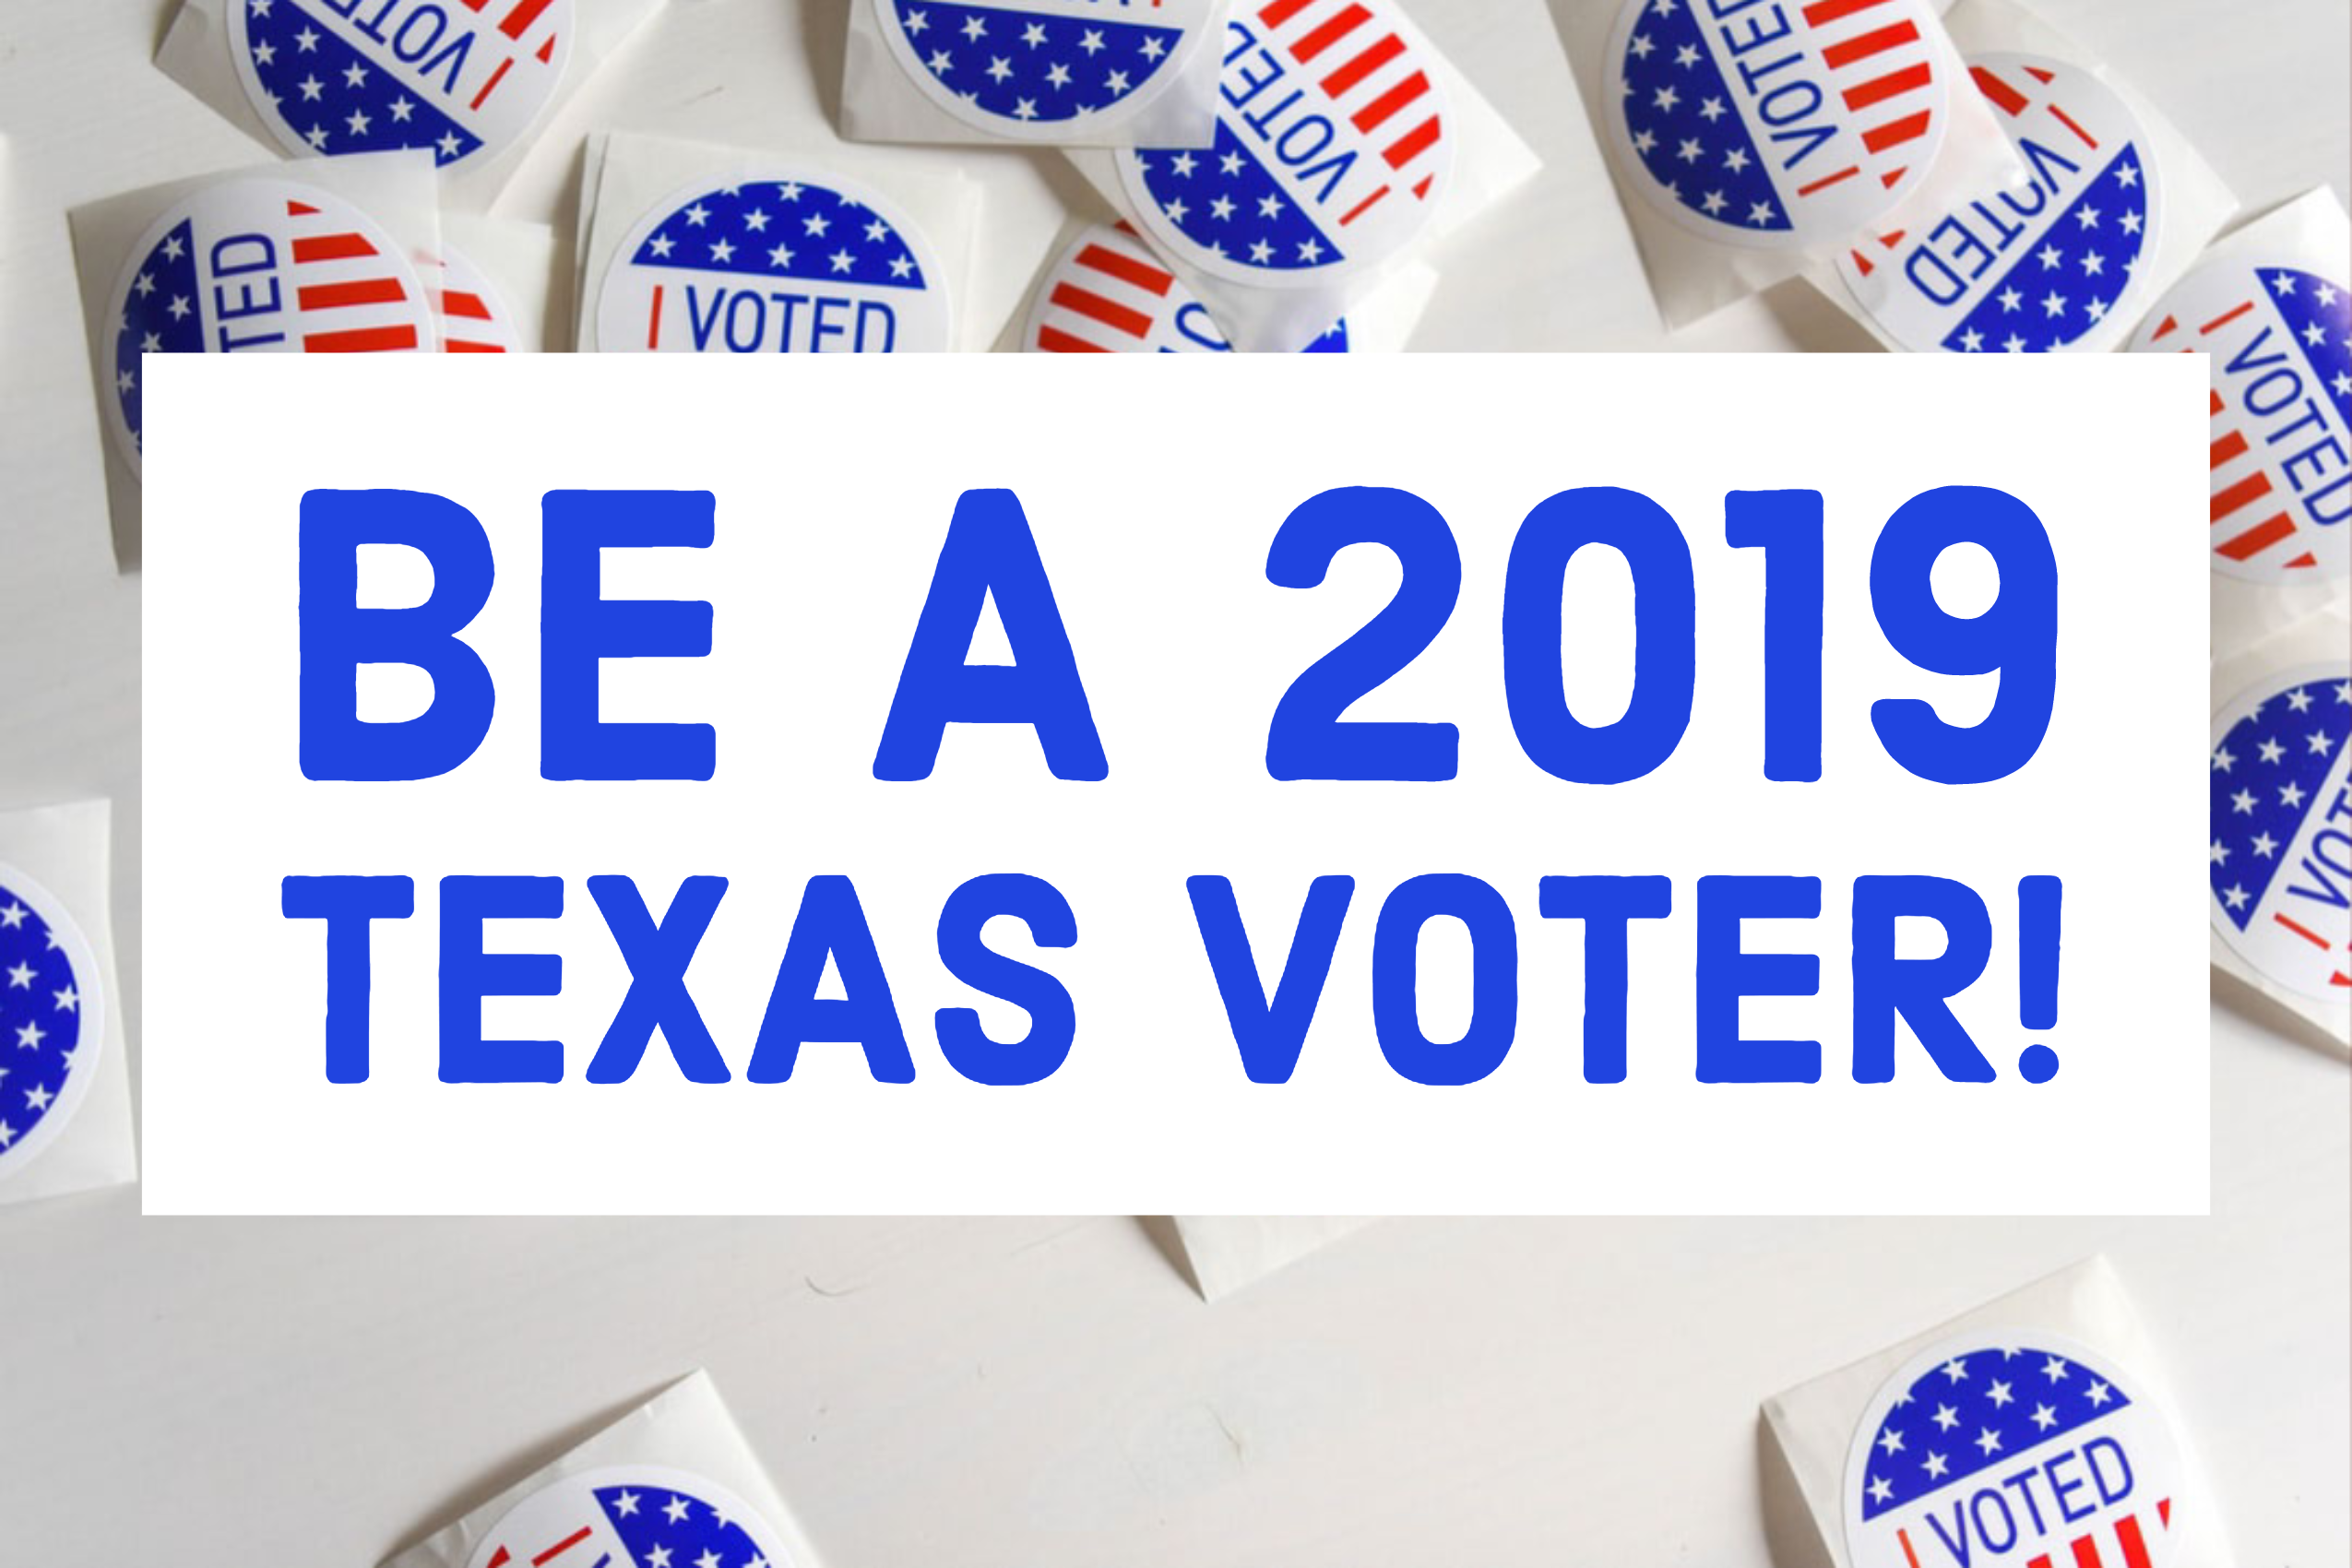 Be a 2019 Texas voter